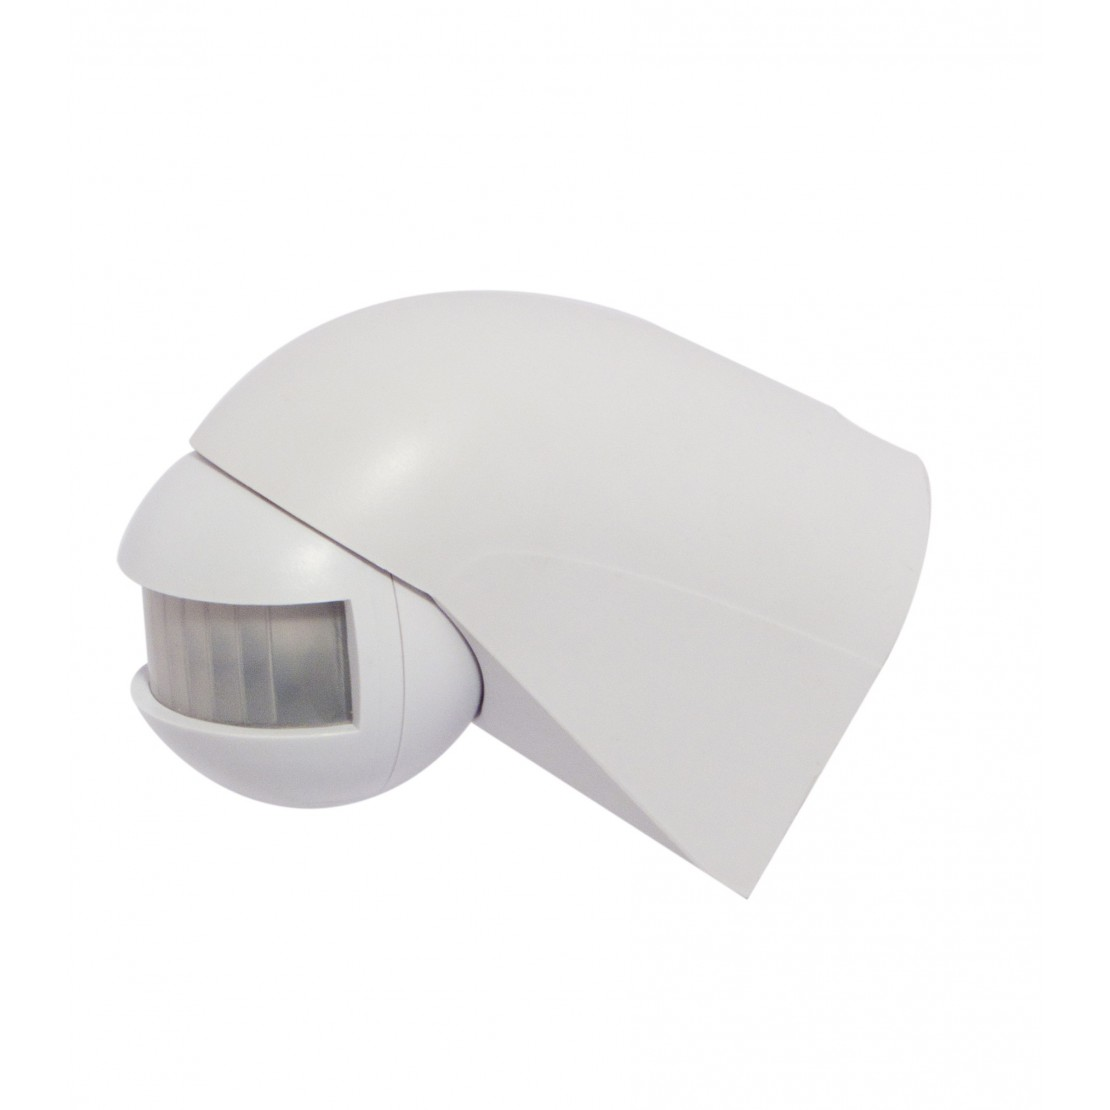 Detector de movimiento 180°  orientable- Blanco